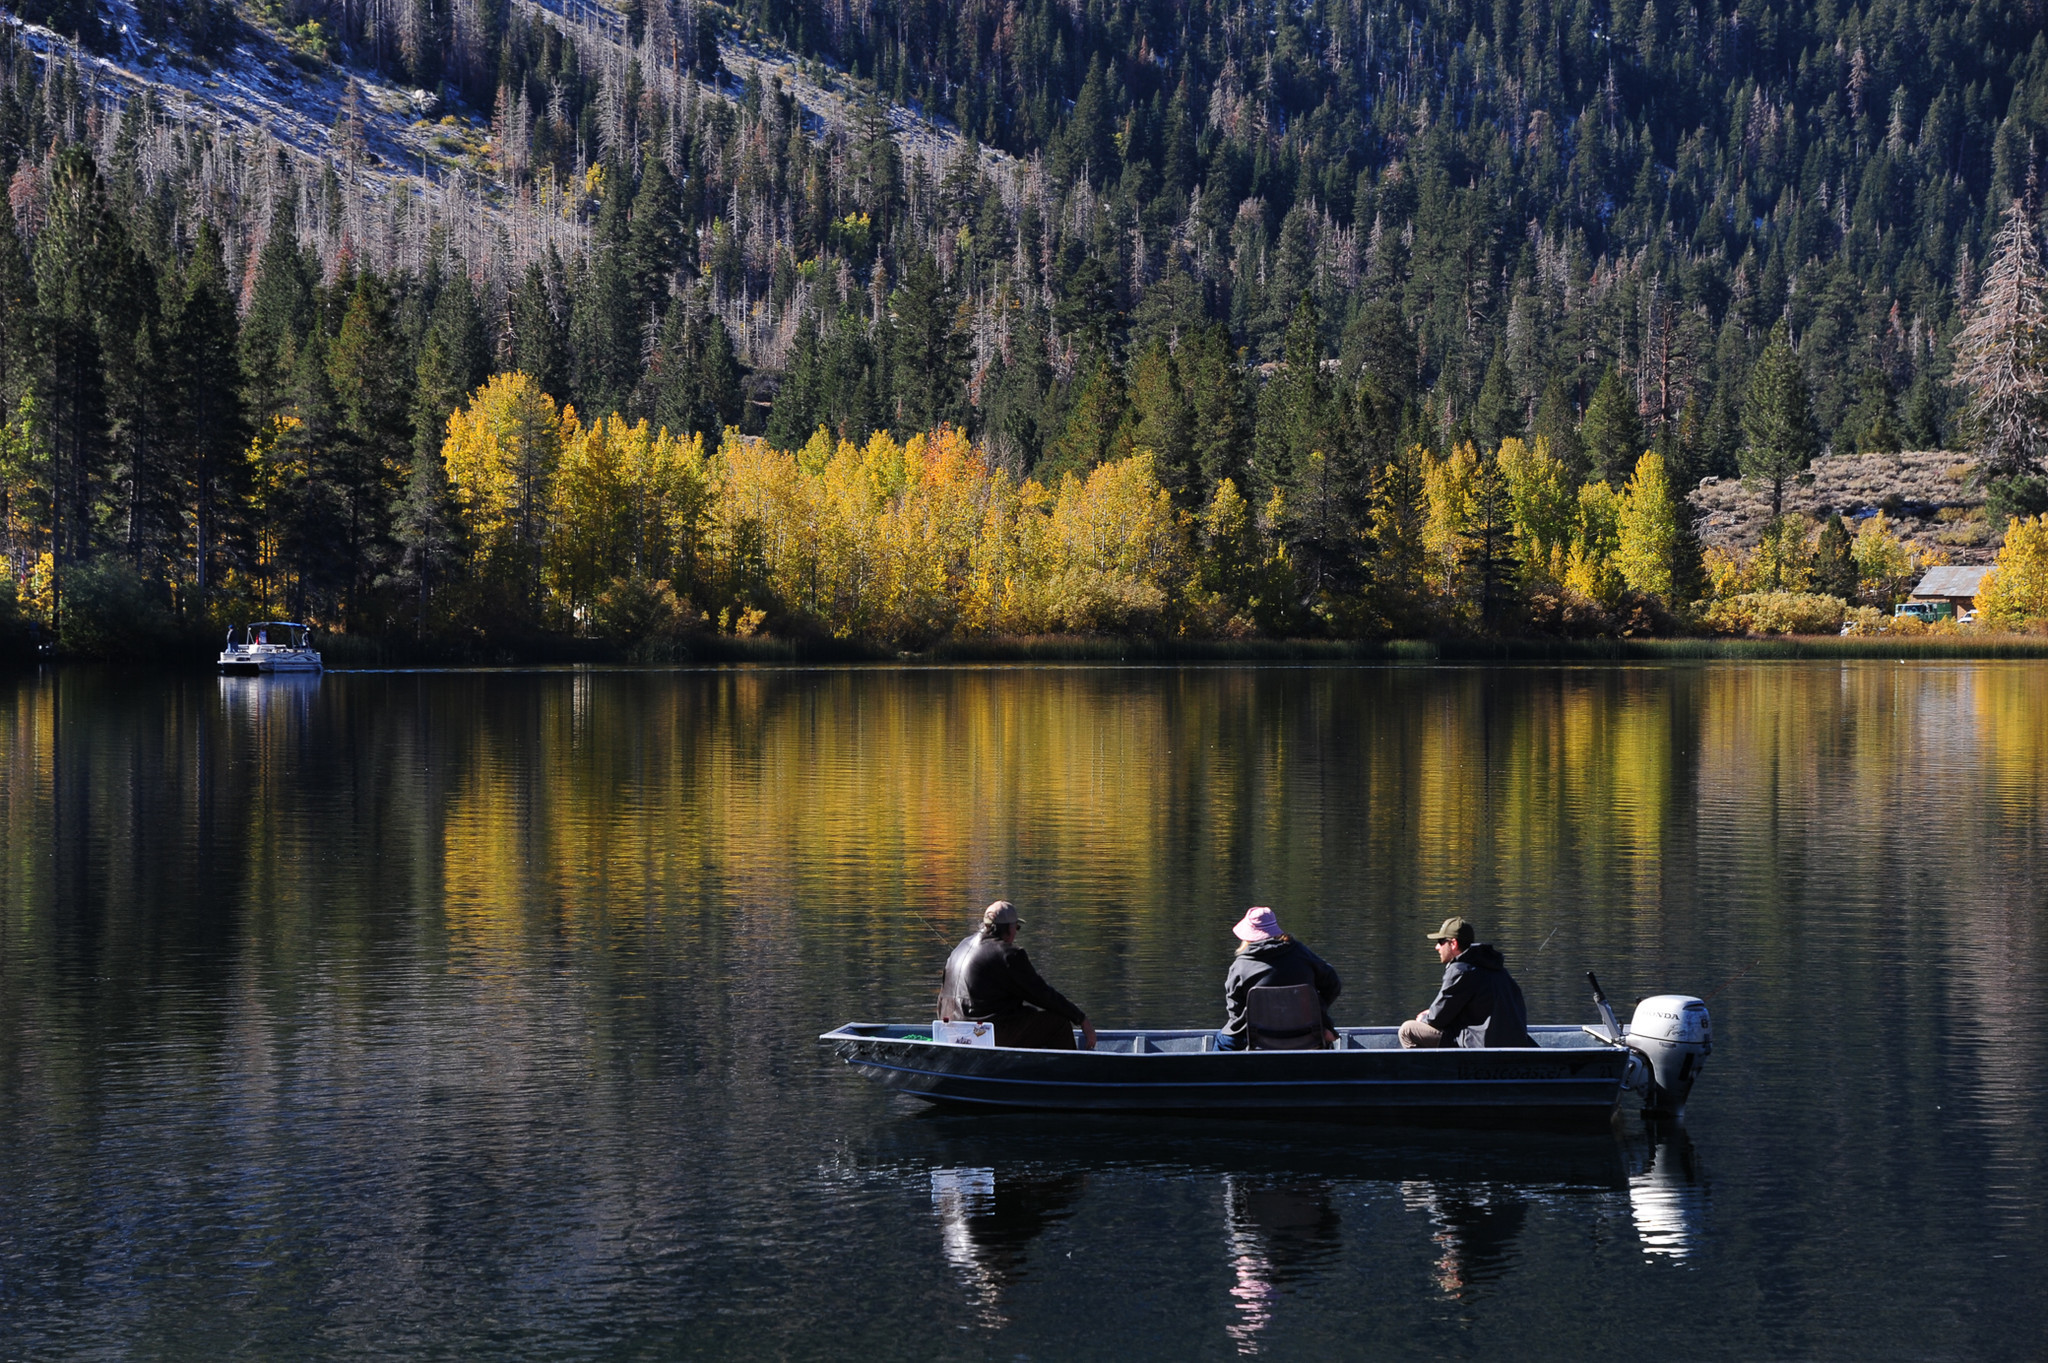 Fall colors reflected in Gull Lake on the June Lake Loop of U.S. Highway 395.